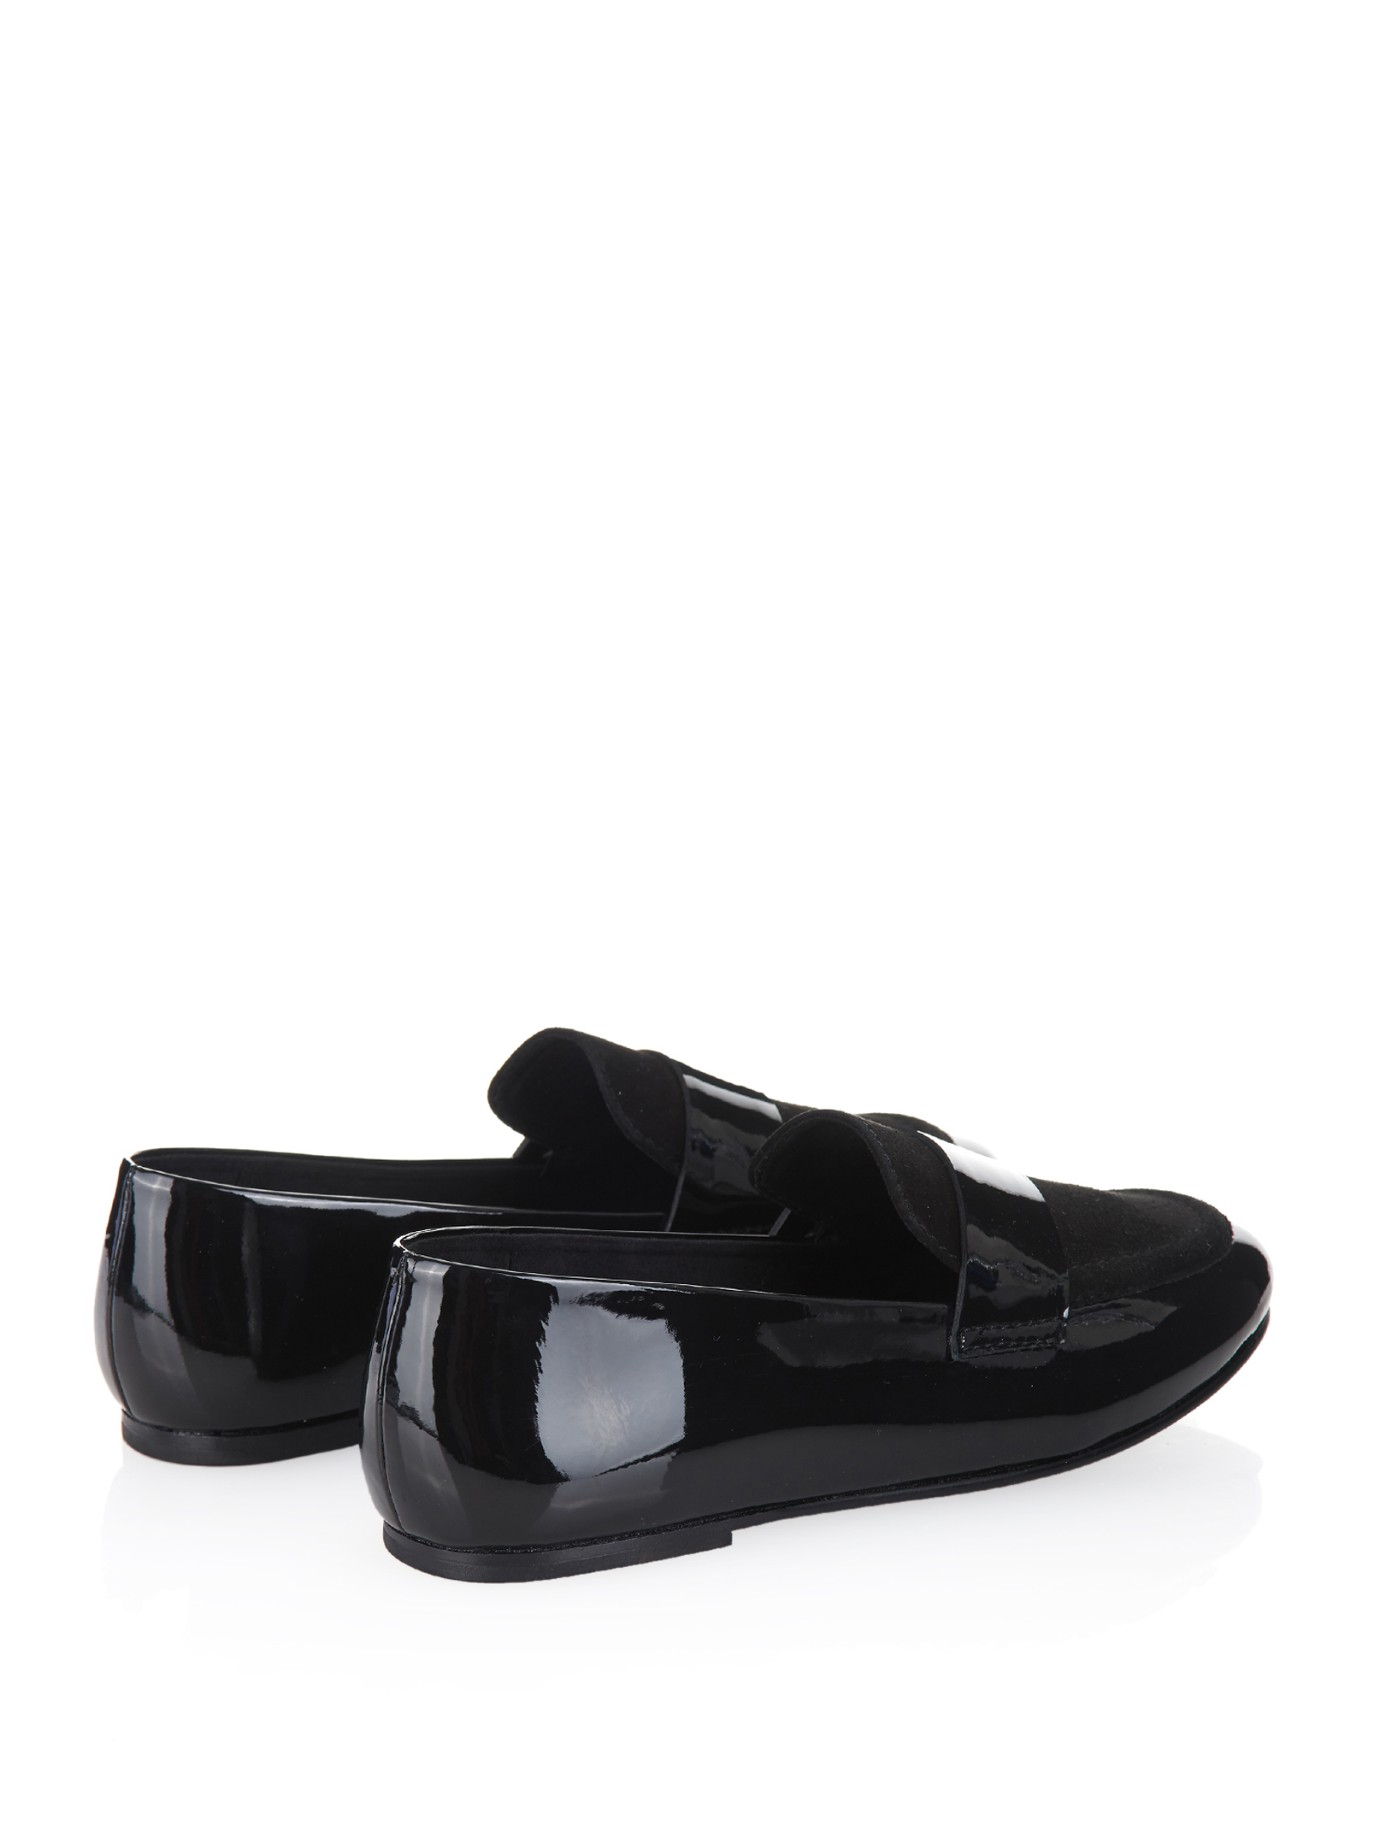 NewbarK Claude Patent Leather Loafers free shipping big sale pay with paypal cheap price zfxDr